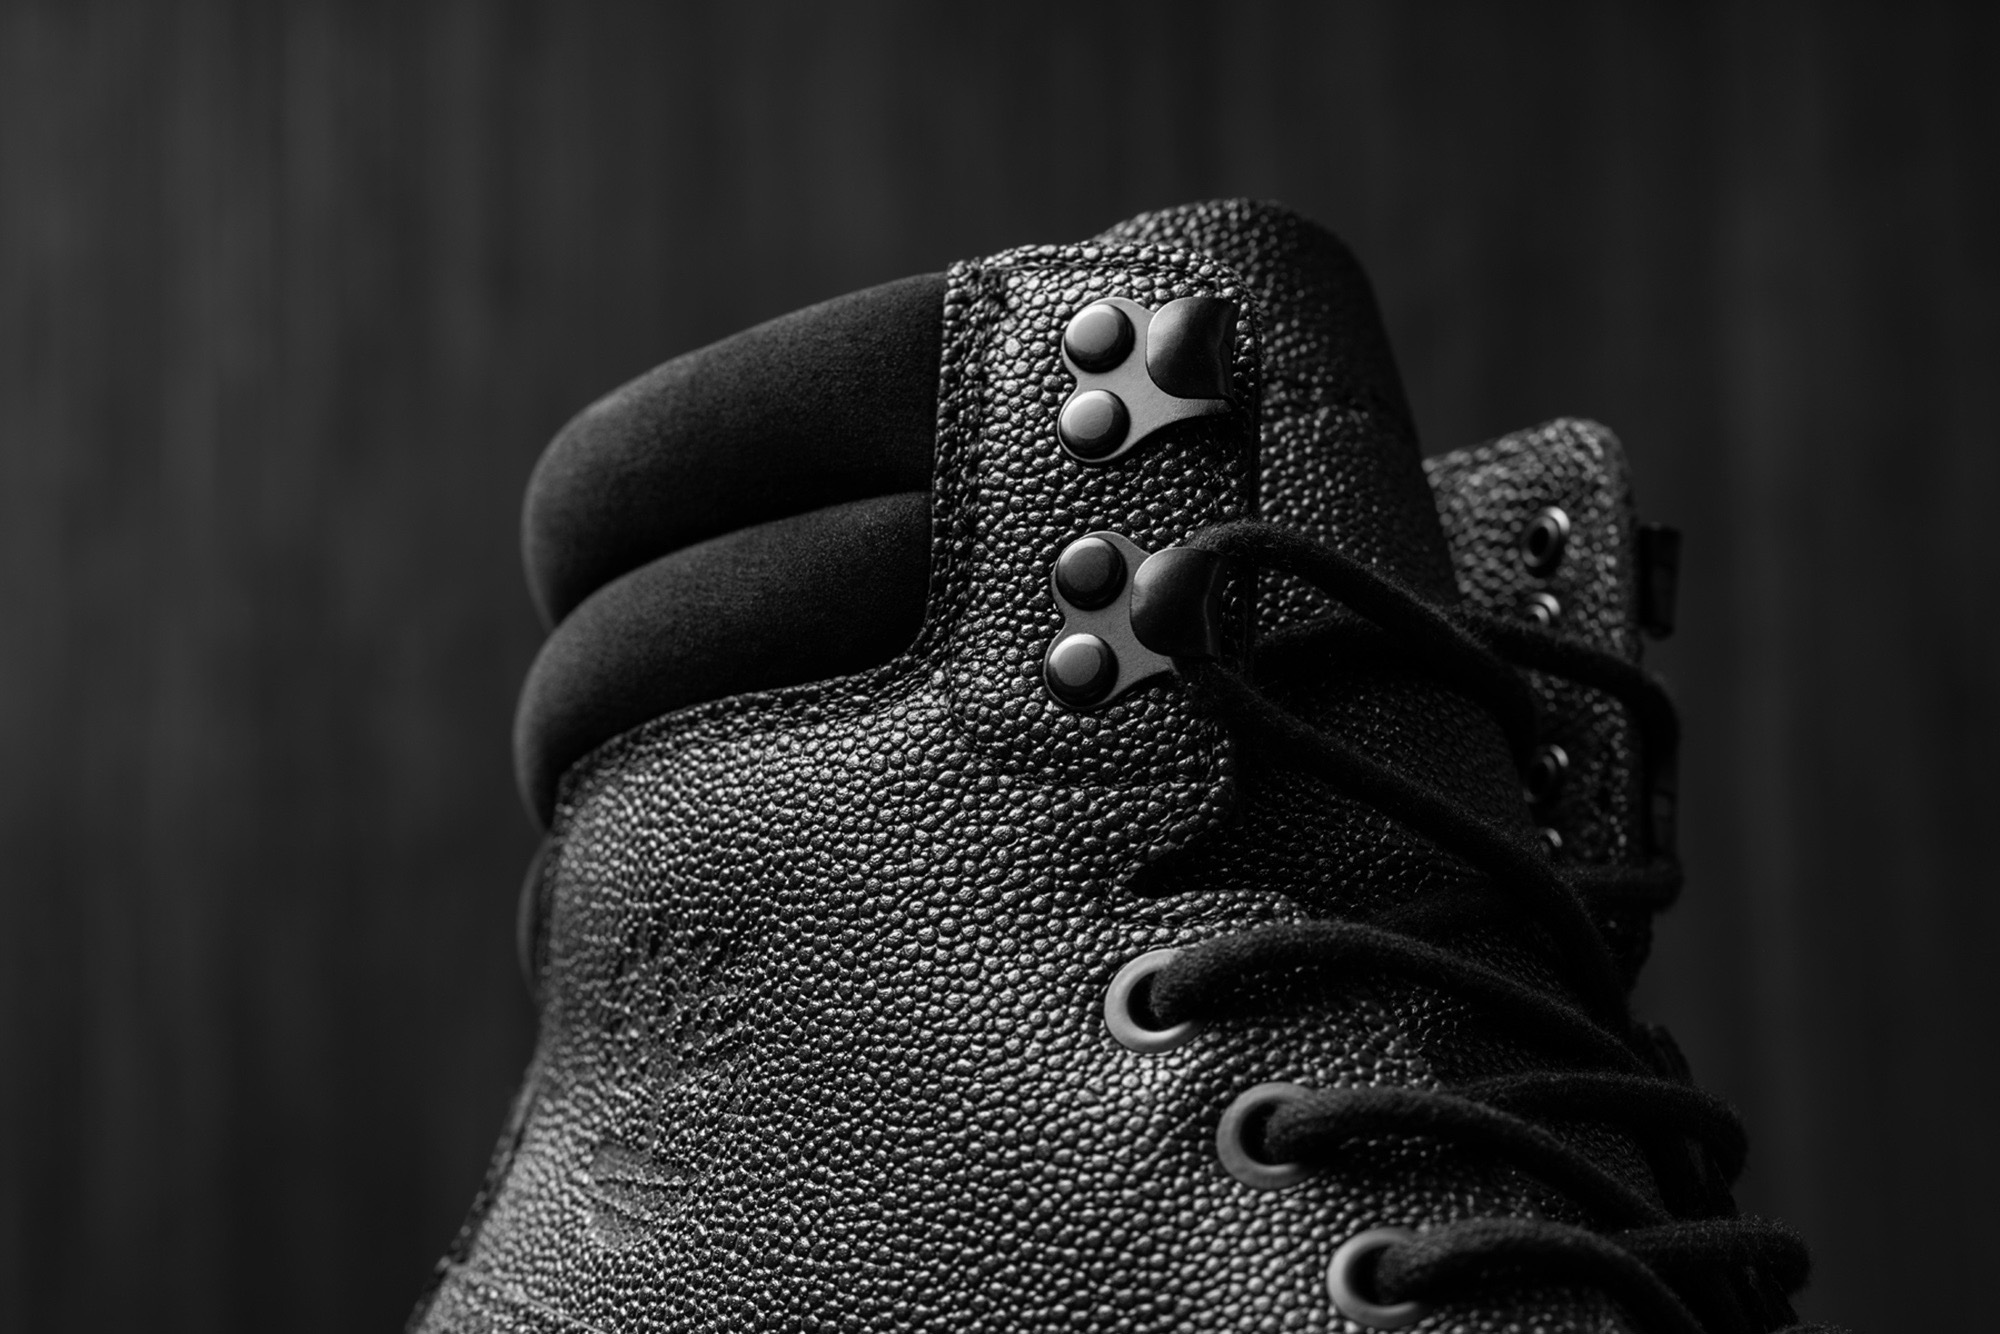 20180823_WH_Timberland_Campaign_Boot_3203_1800px.jpg